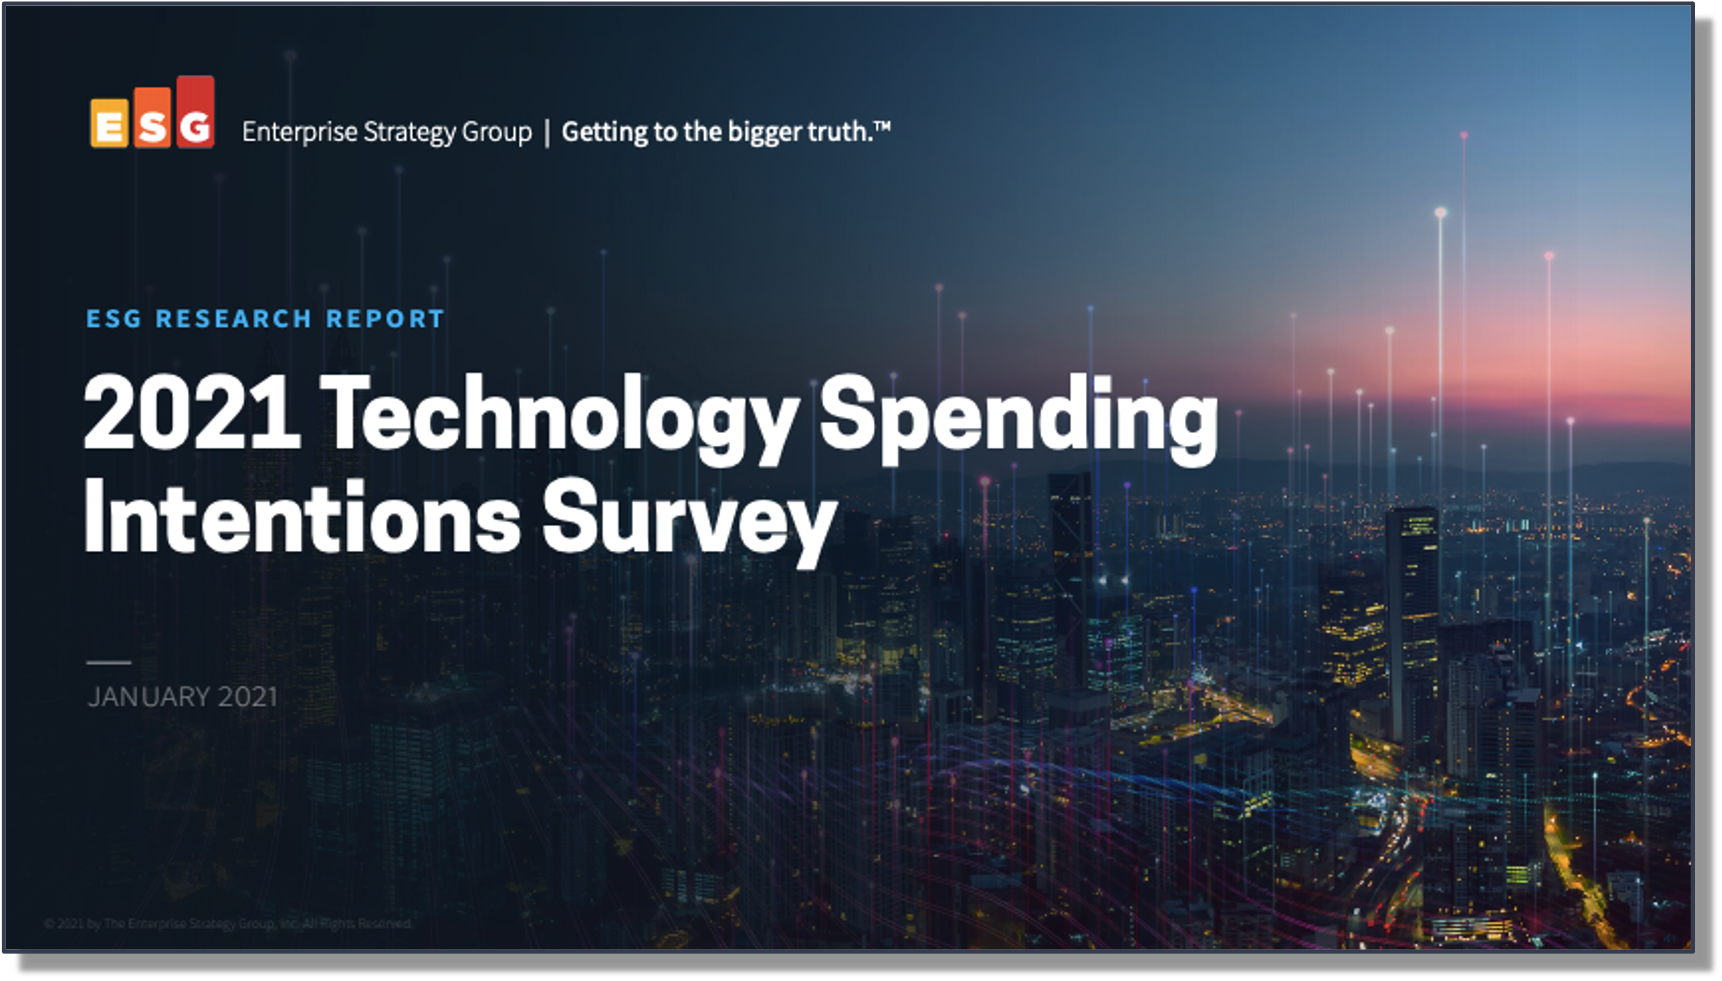 ESG Research Report: 2021 Technology Spending Intentions Survey